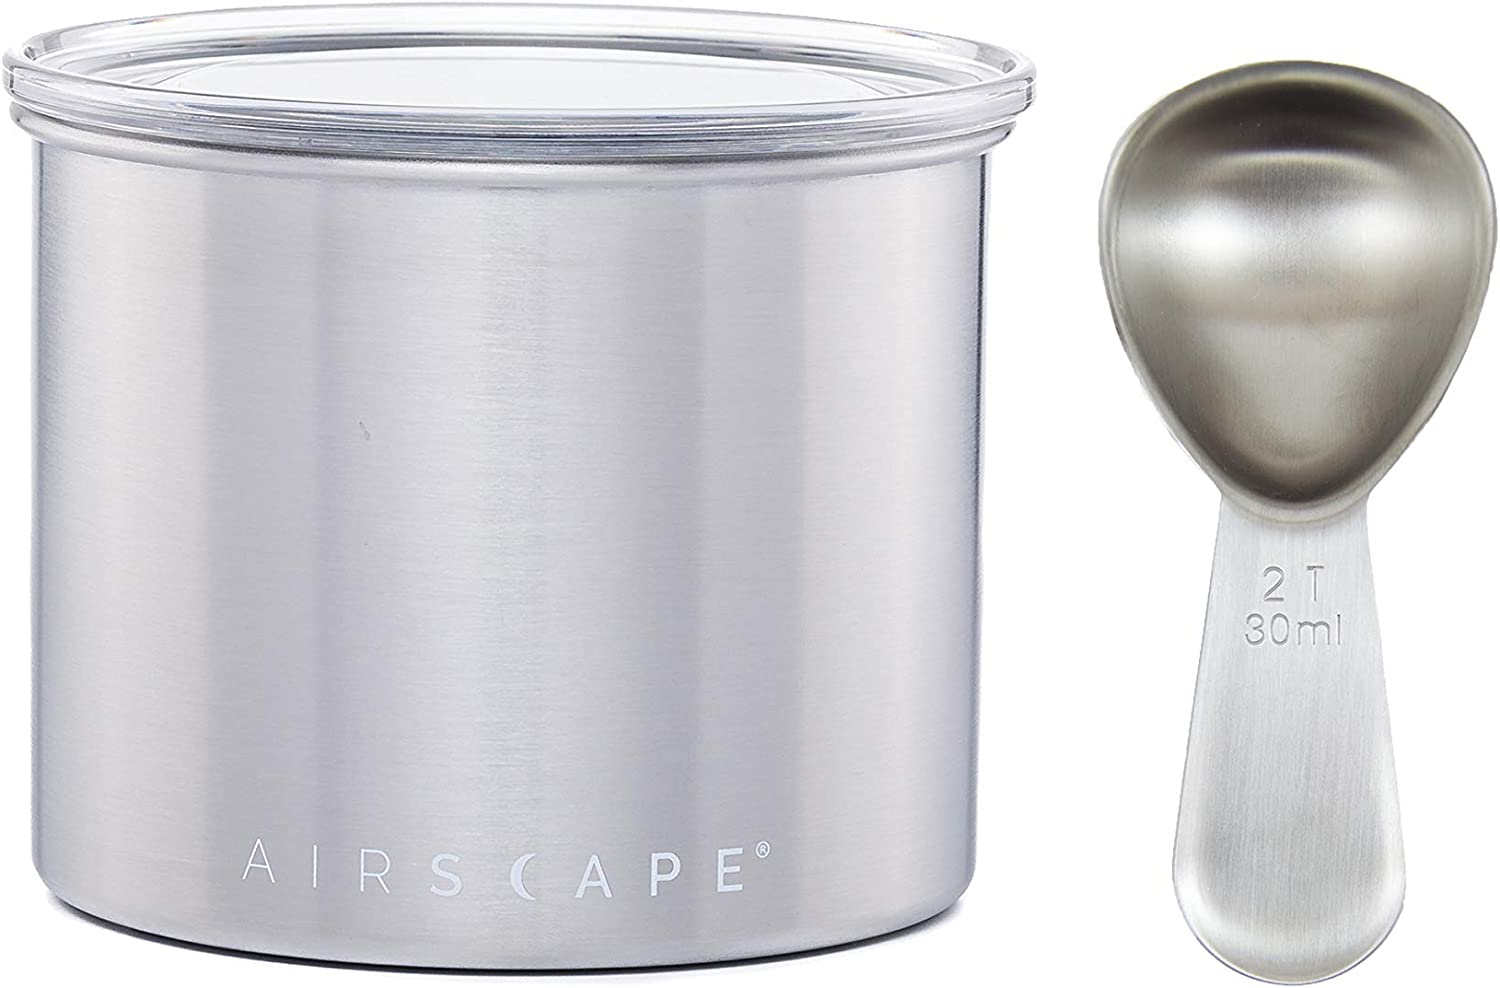 Airscape Coffee and Food Storage Canister with Scoop - Patented Airtight Lid Preserve Food Freshness, Stainless Steel, 4